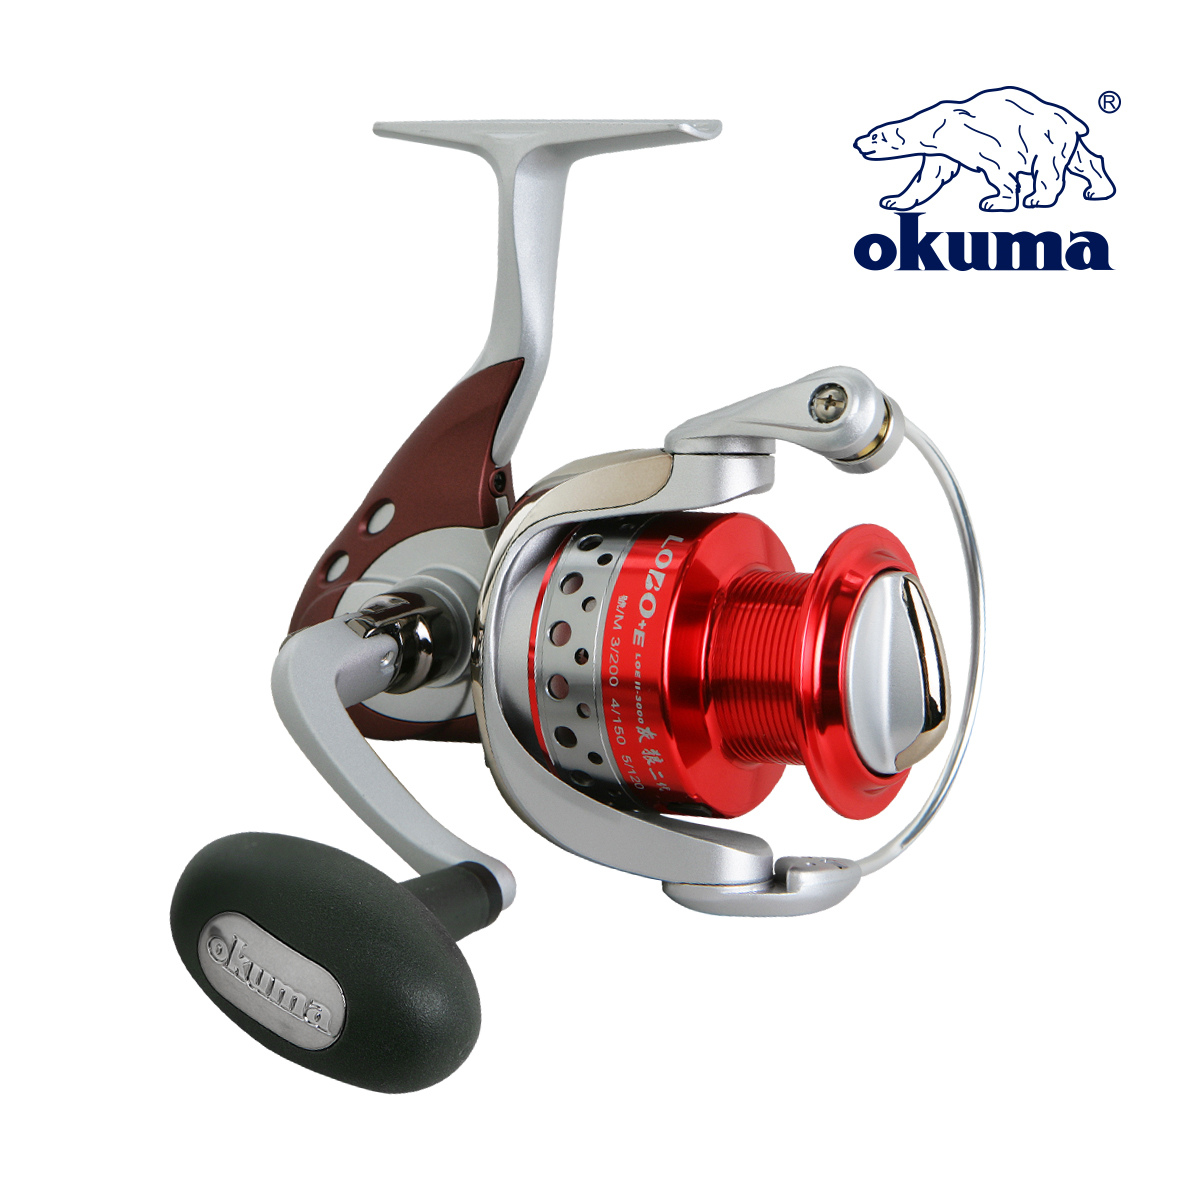 OKUMA LOE II 2000 High Quality Fishing Reel Spinning Reel Gear Ratio 5.0:1 Ball Bearing 6+1 Lure Reel Sea River Fishing Tackle dream m19 multifunctional opie fishing reel bag fishing bags pole tackle military lure reel backpack fishing gear 33 13 23cm